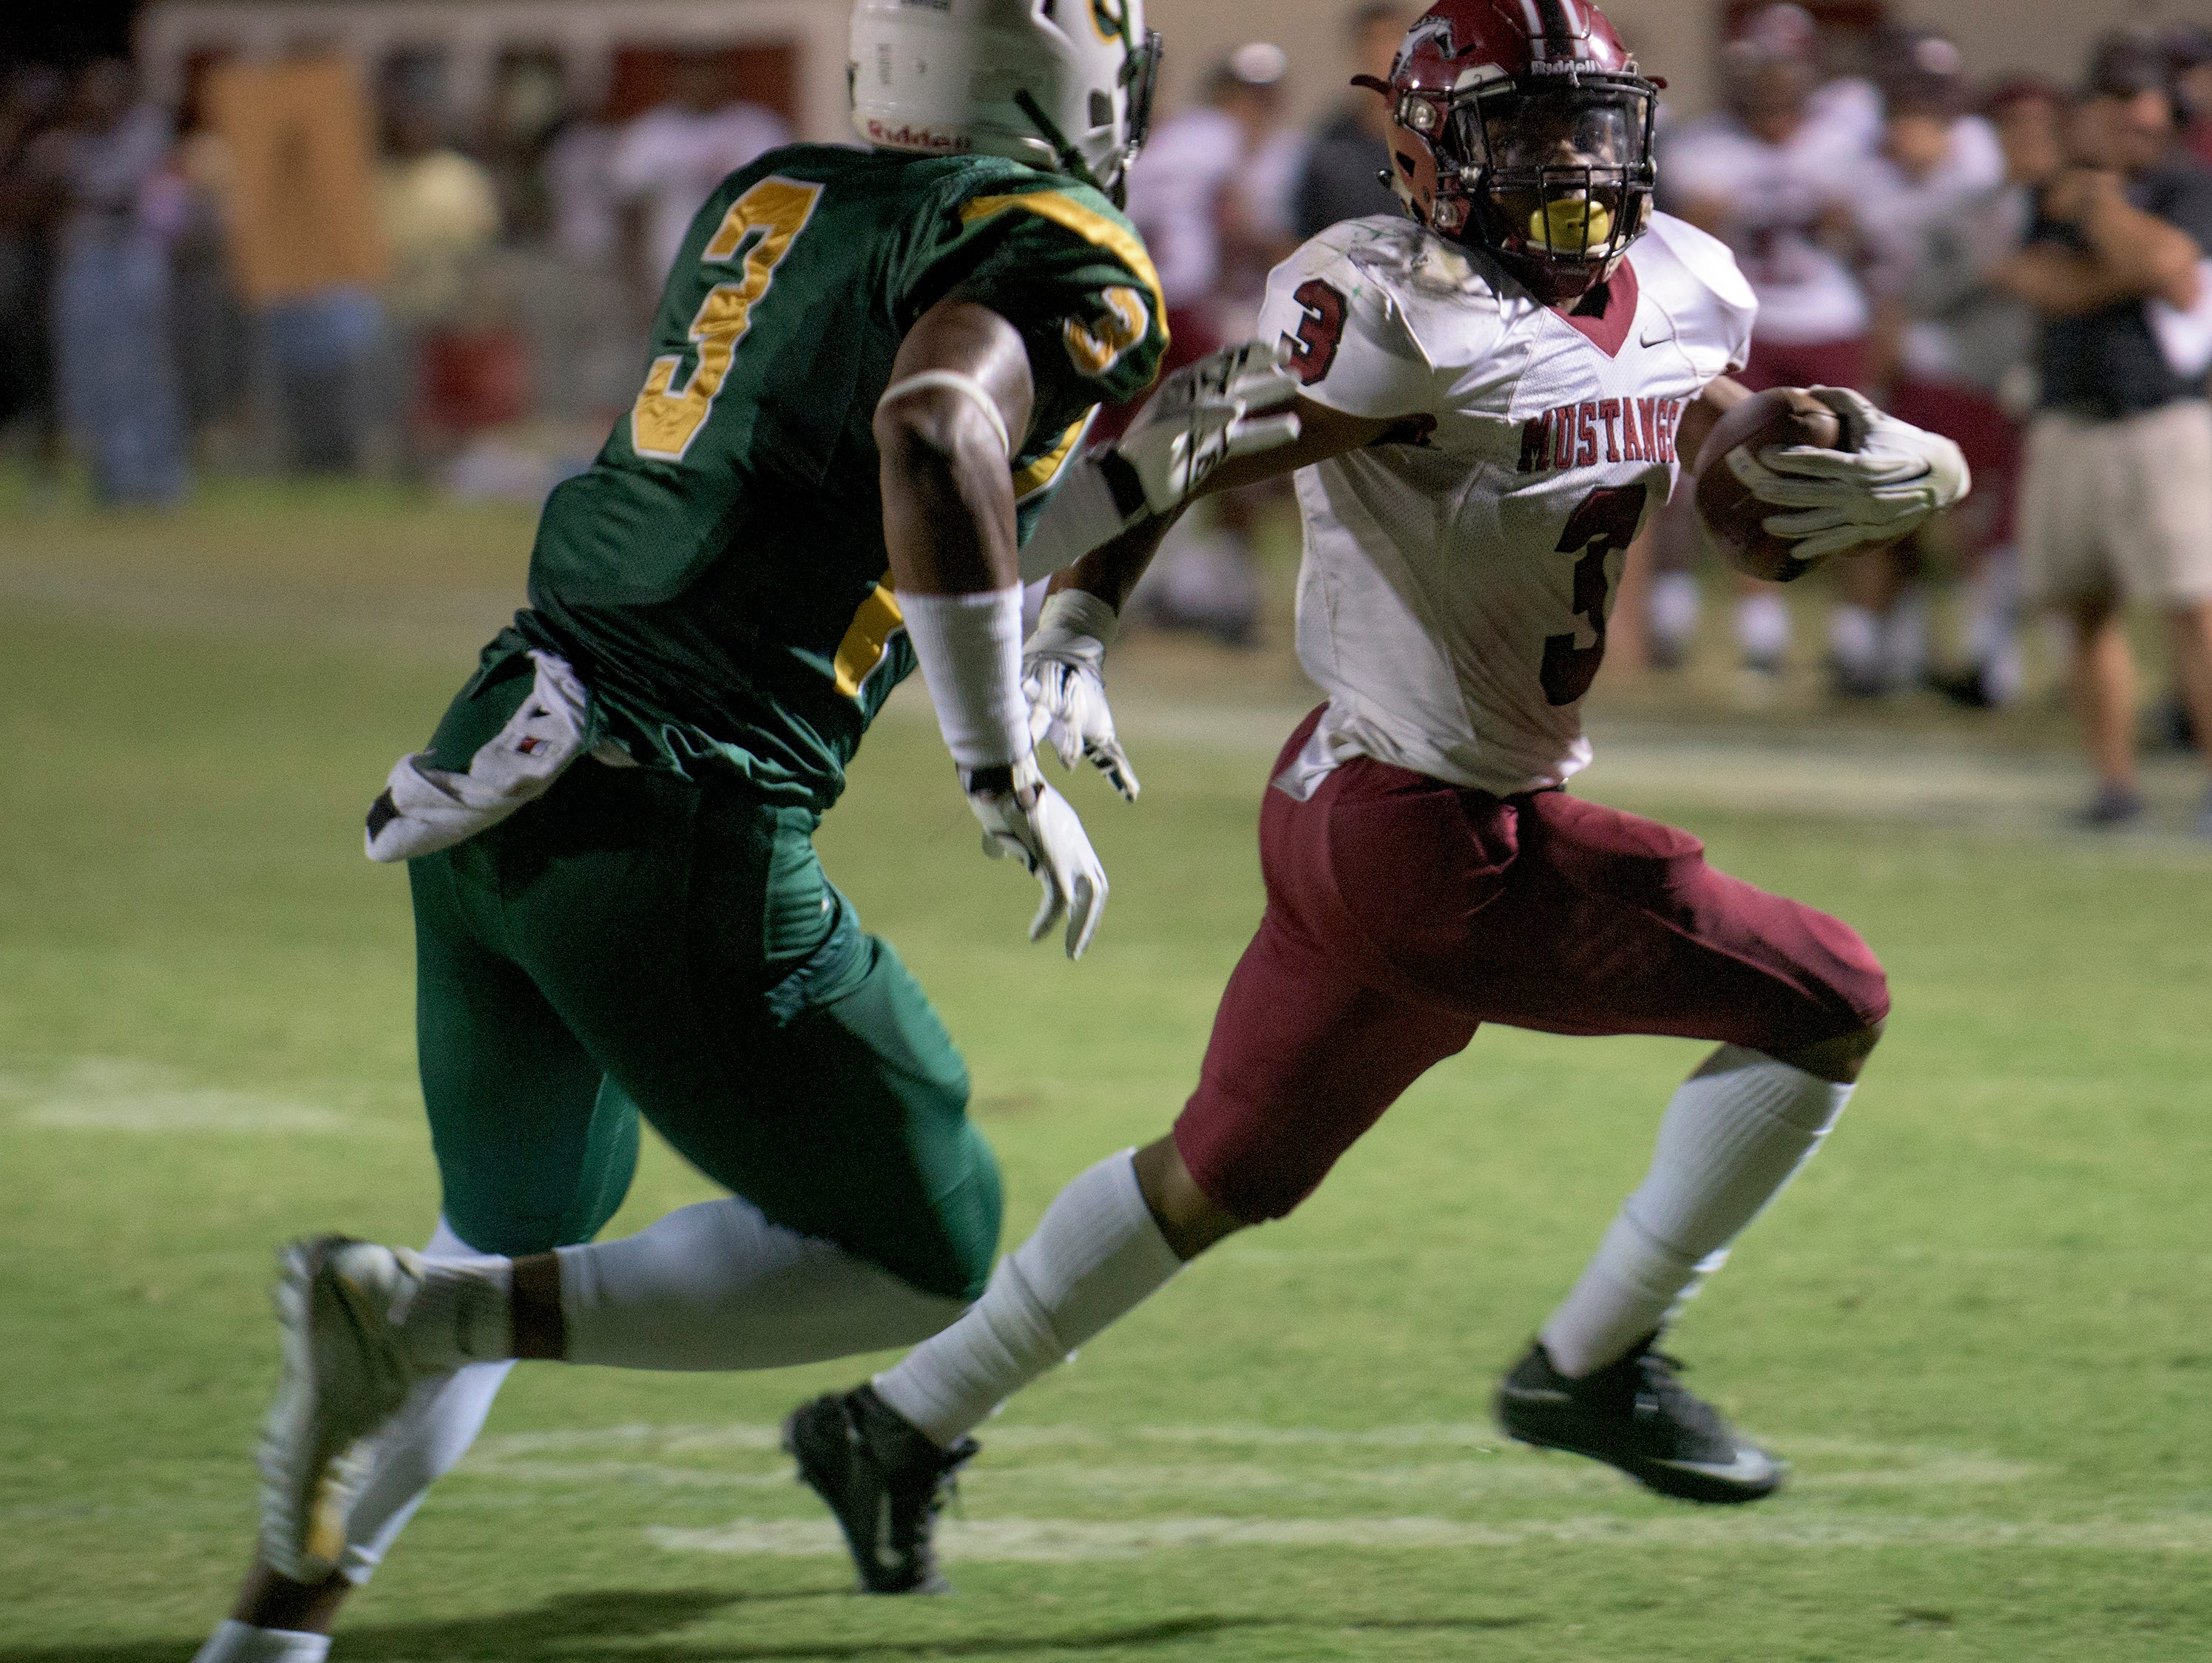 Stanhope Elmore's Bennie Smith tries to get by Carver's Lyndell Wilson in Millbrook, Ala. on Friday September 18, 2015.